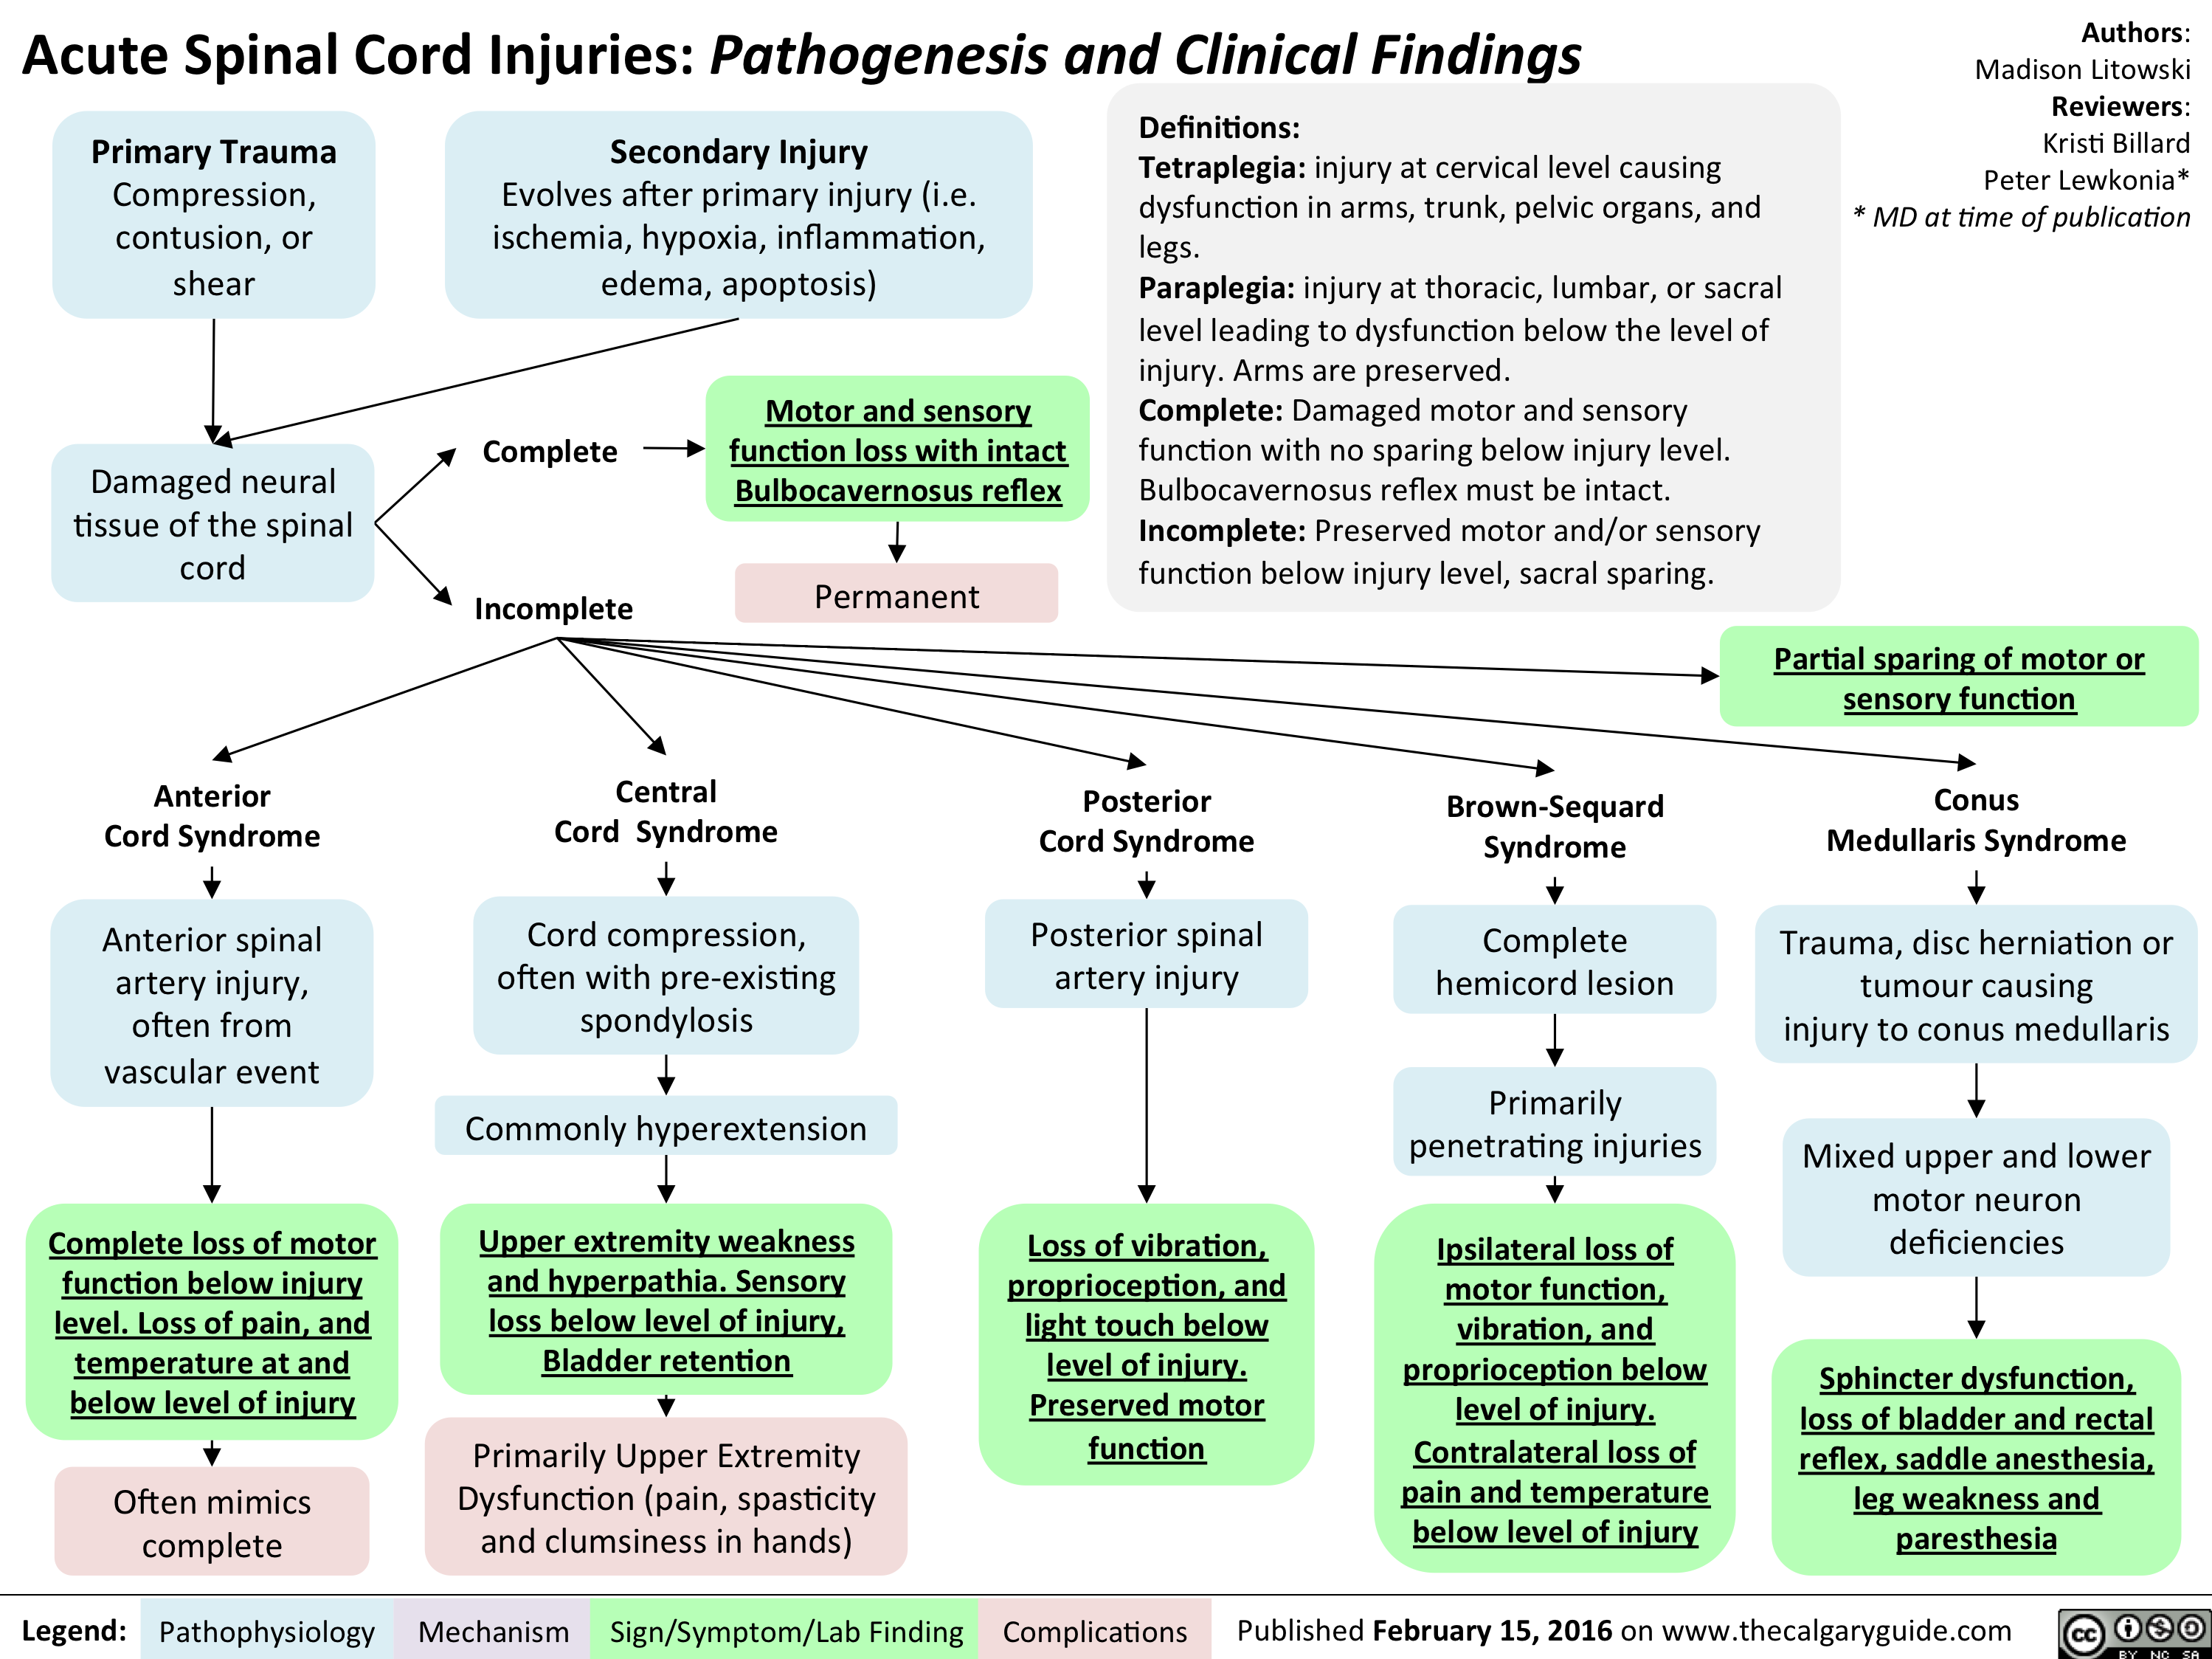 Acute Spinal Cord Injuries - Pathogenesis and clinical findings